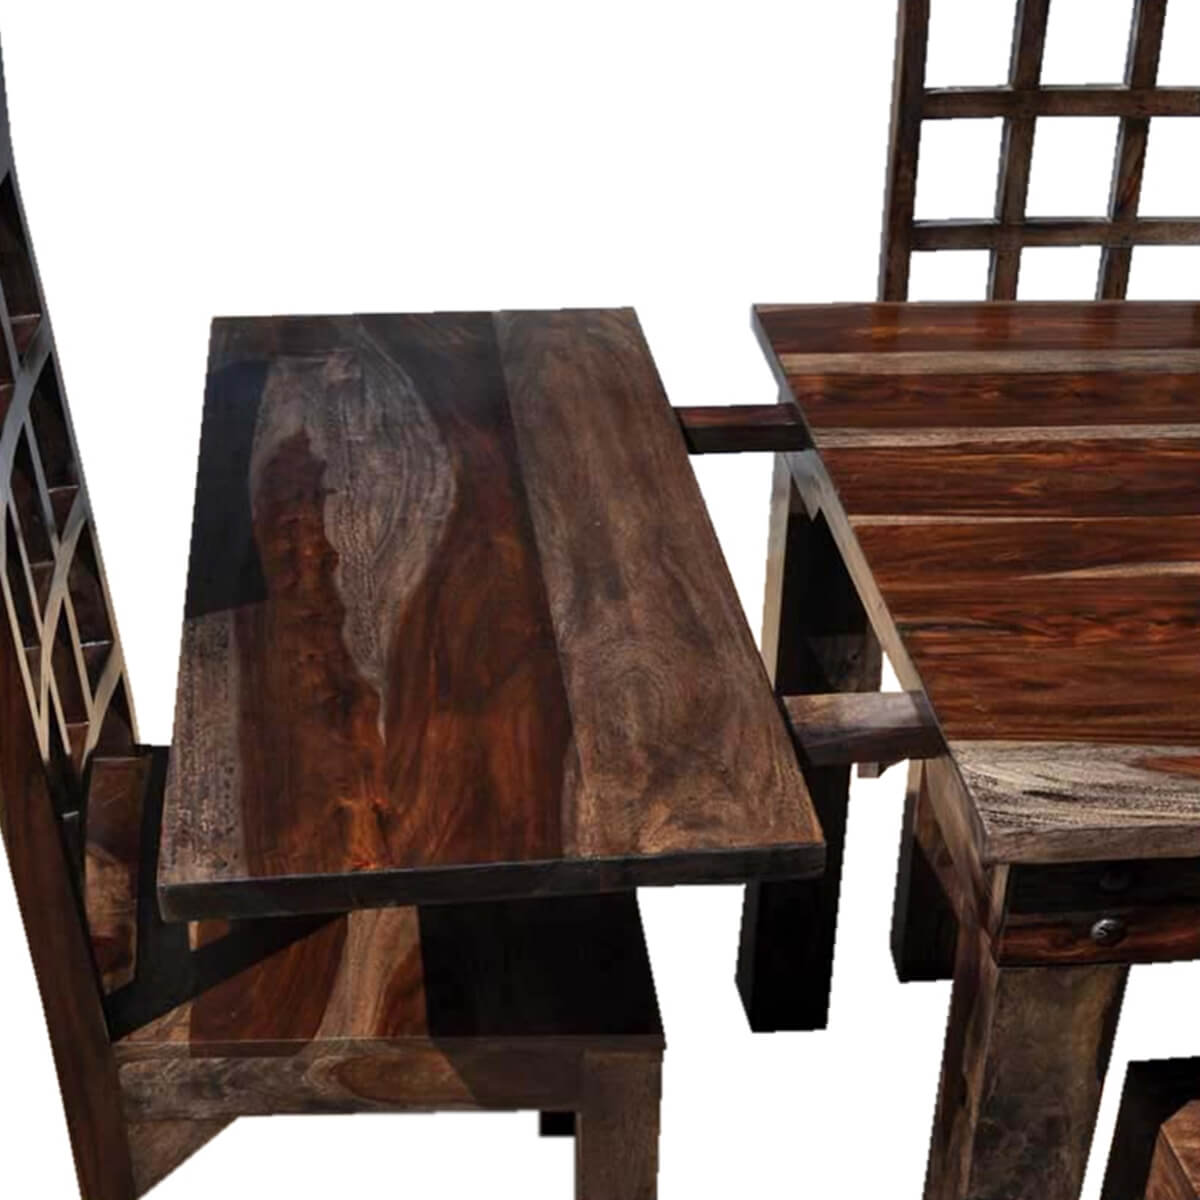 Rustic Chairs For Dining Room: Portland Rustic Furniture Extendable Dining Room Table